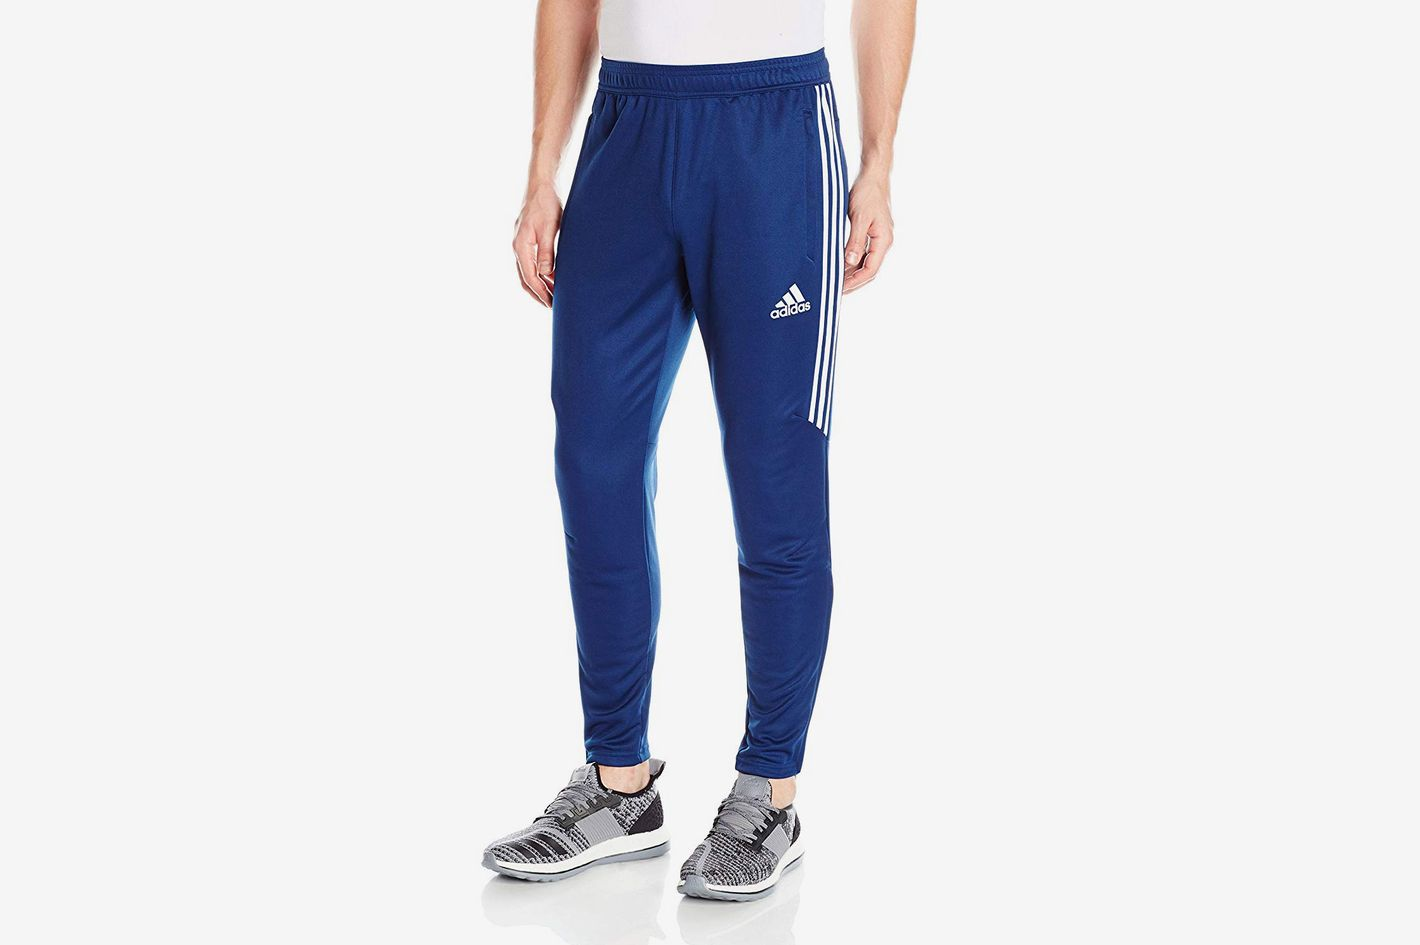 b23b824d16e0 Adidas Men s Soccer Tiro 17 Training Pants